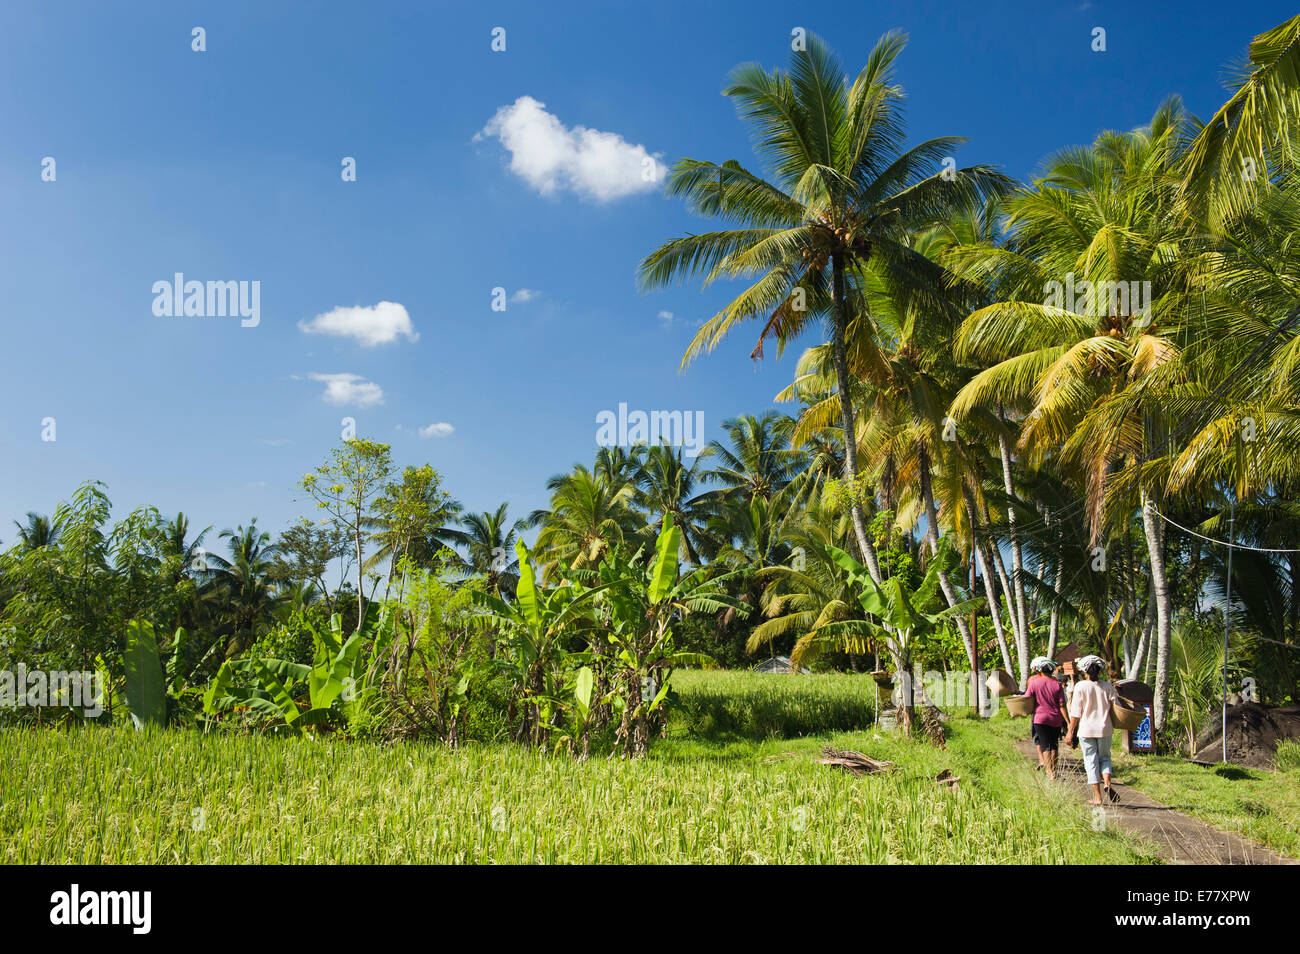 Paddy field and coconut palms, Ubud, Bali, Indonesia - Stock Image